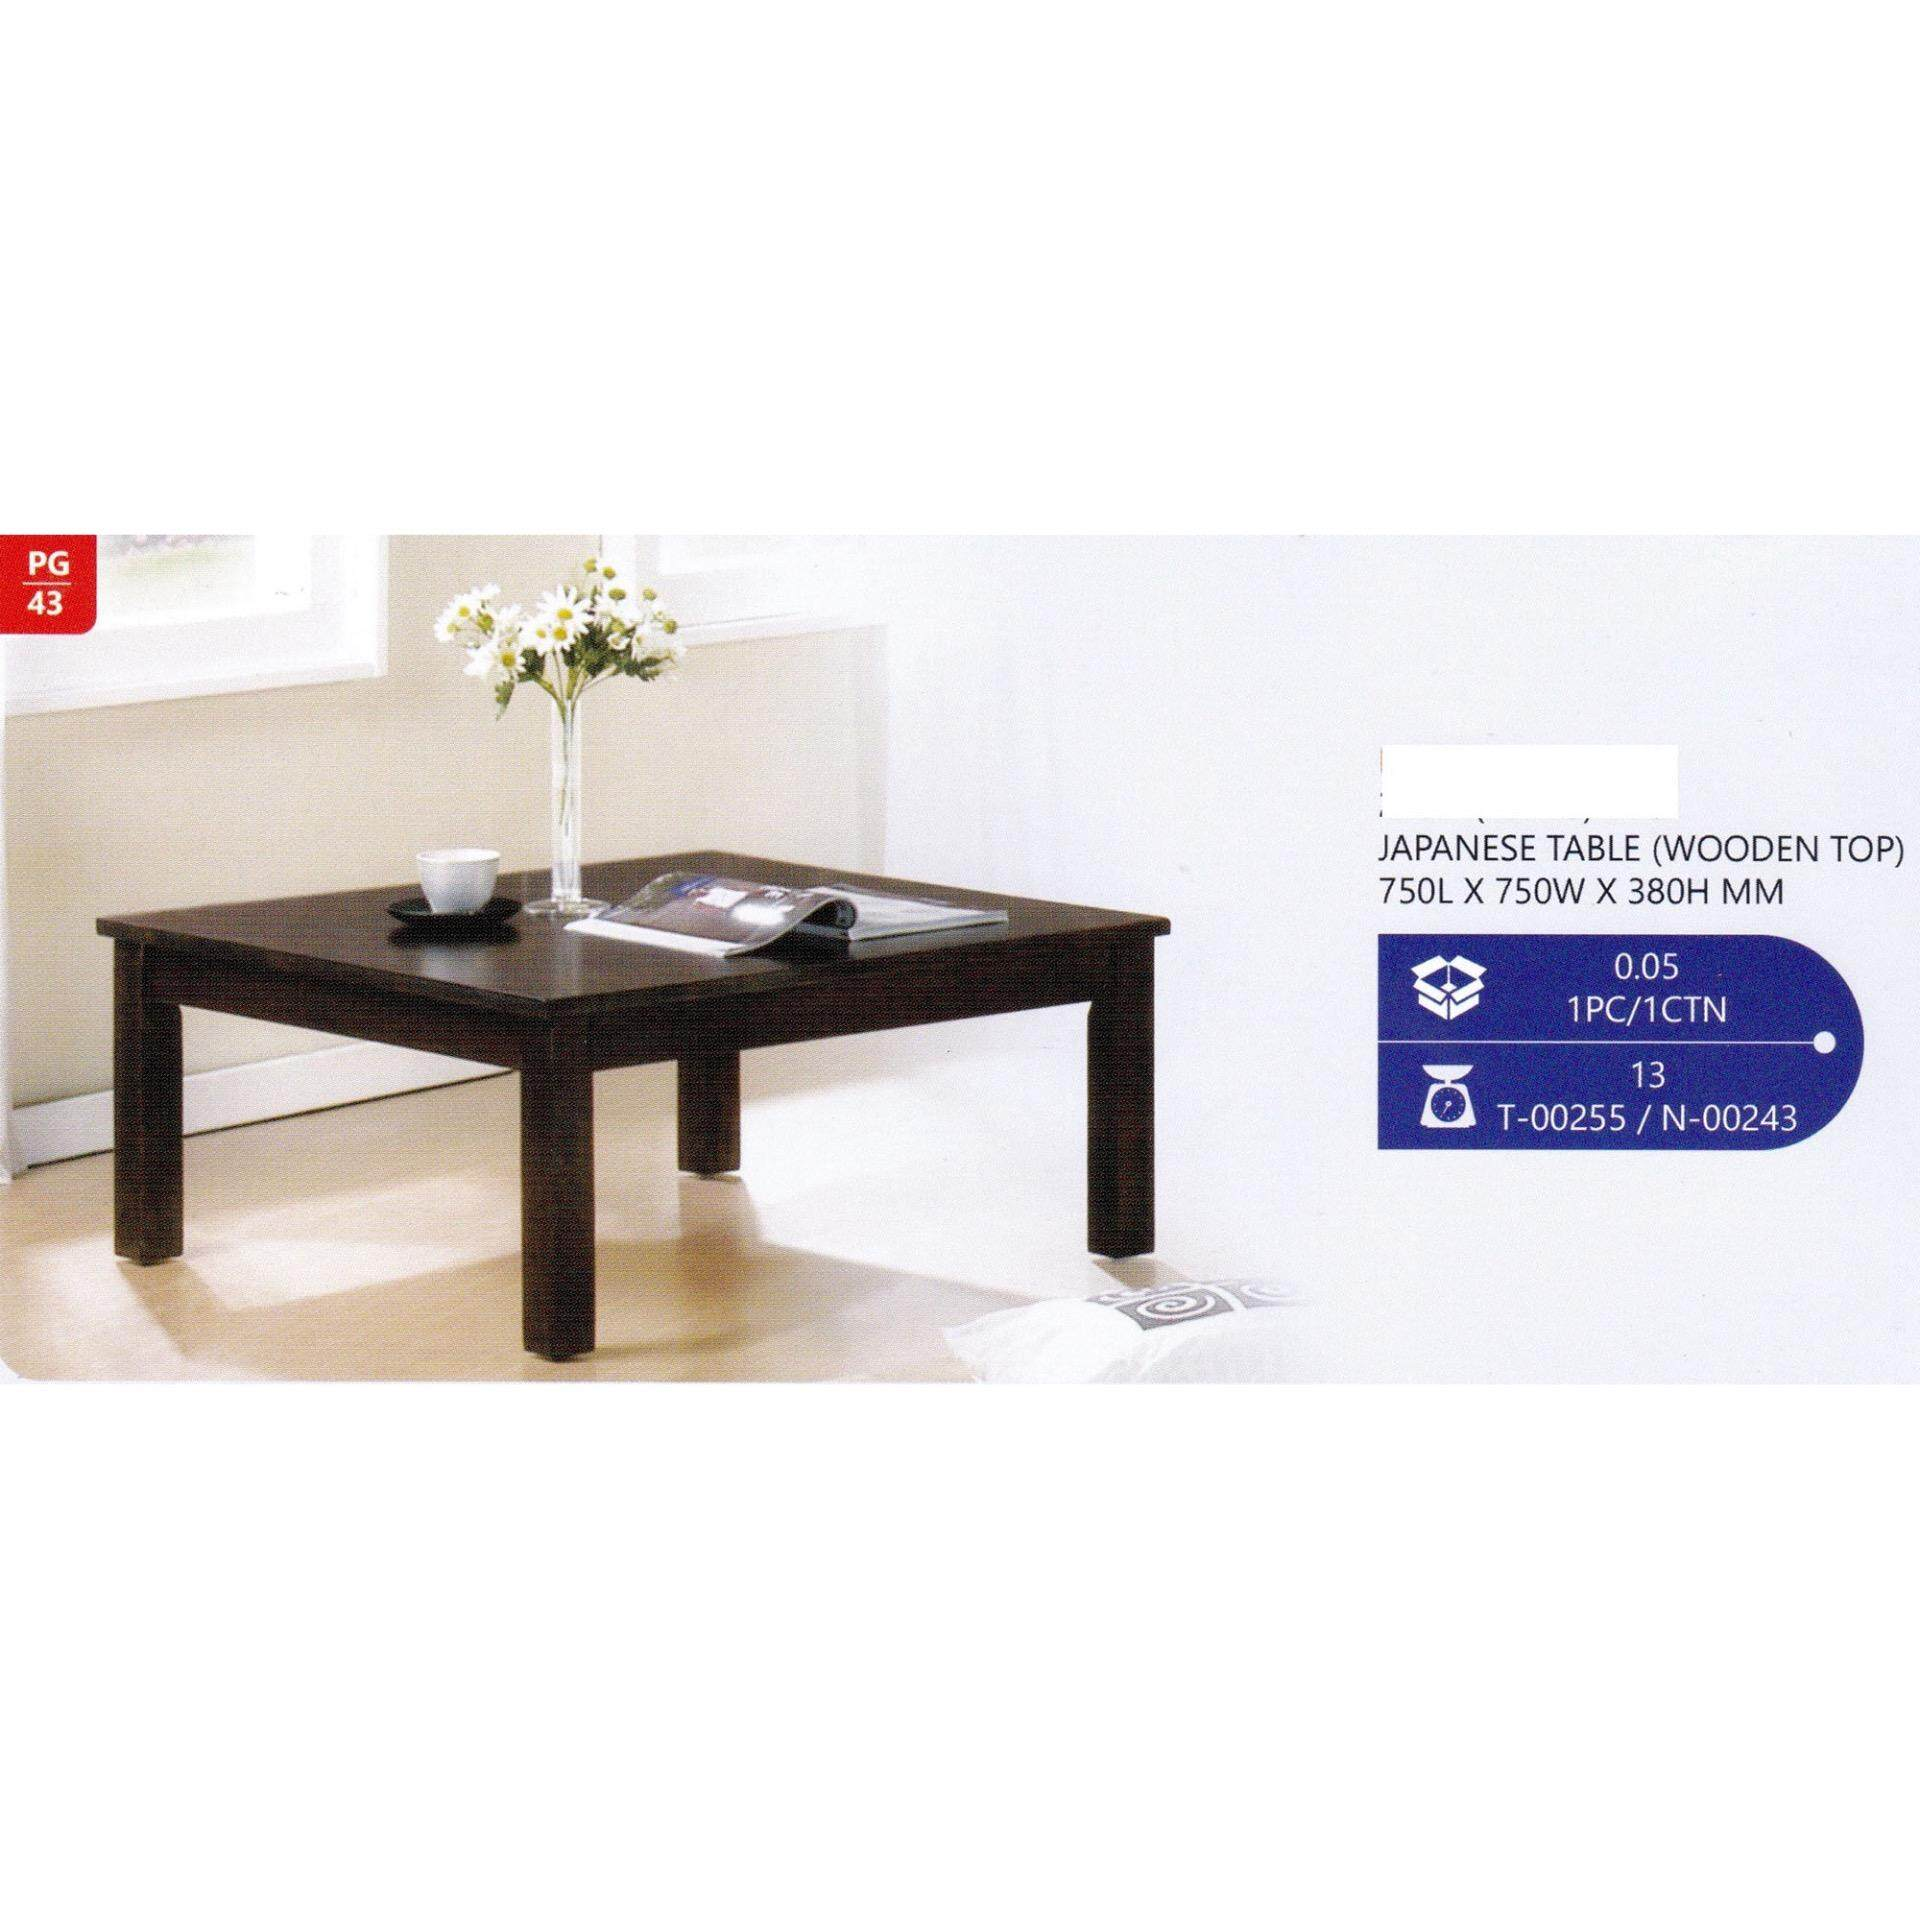 2 & Half Feet Solid Wood Japanese Coffee Table L750MM X W750MM X H390MM Pre-Order 1 Week